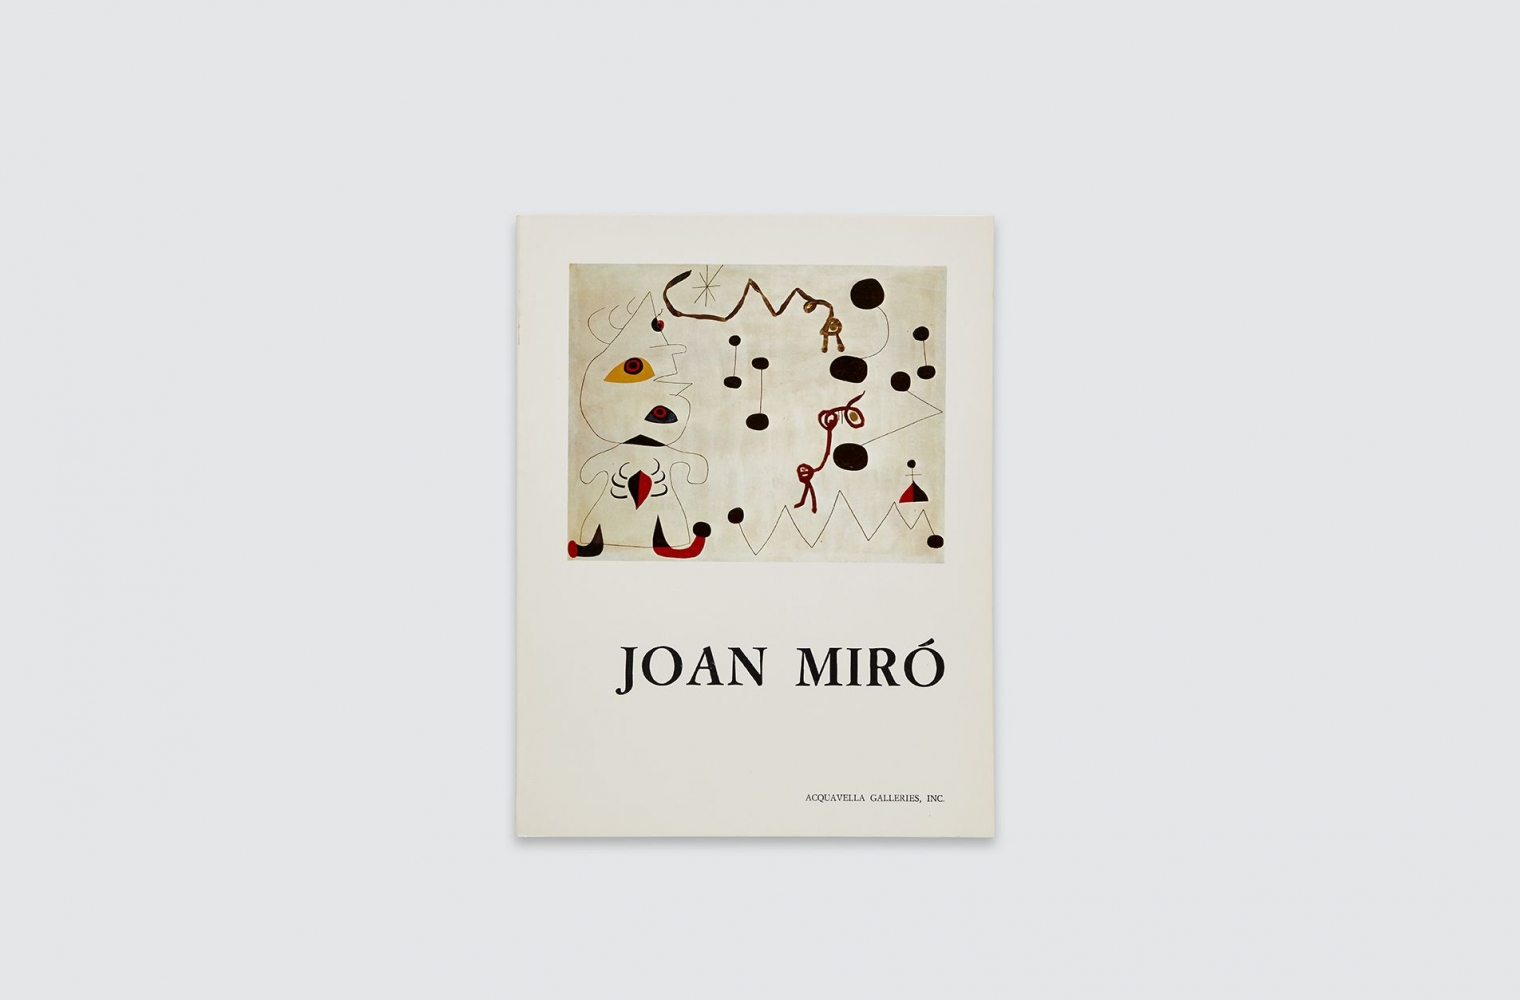 Catalogue for Joan Miró exhibition, fall 1972.